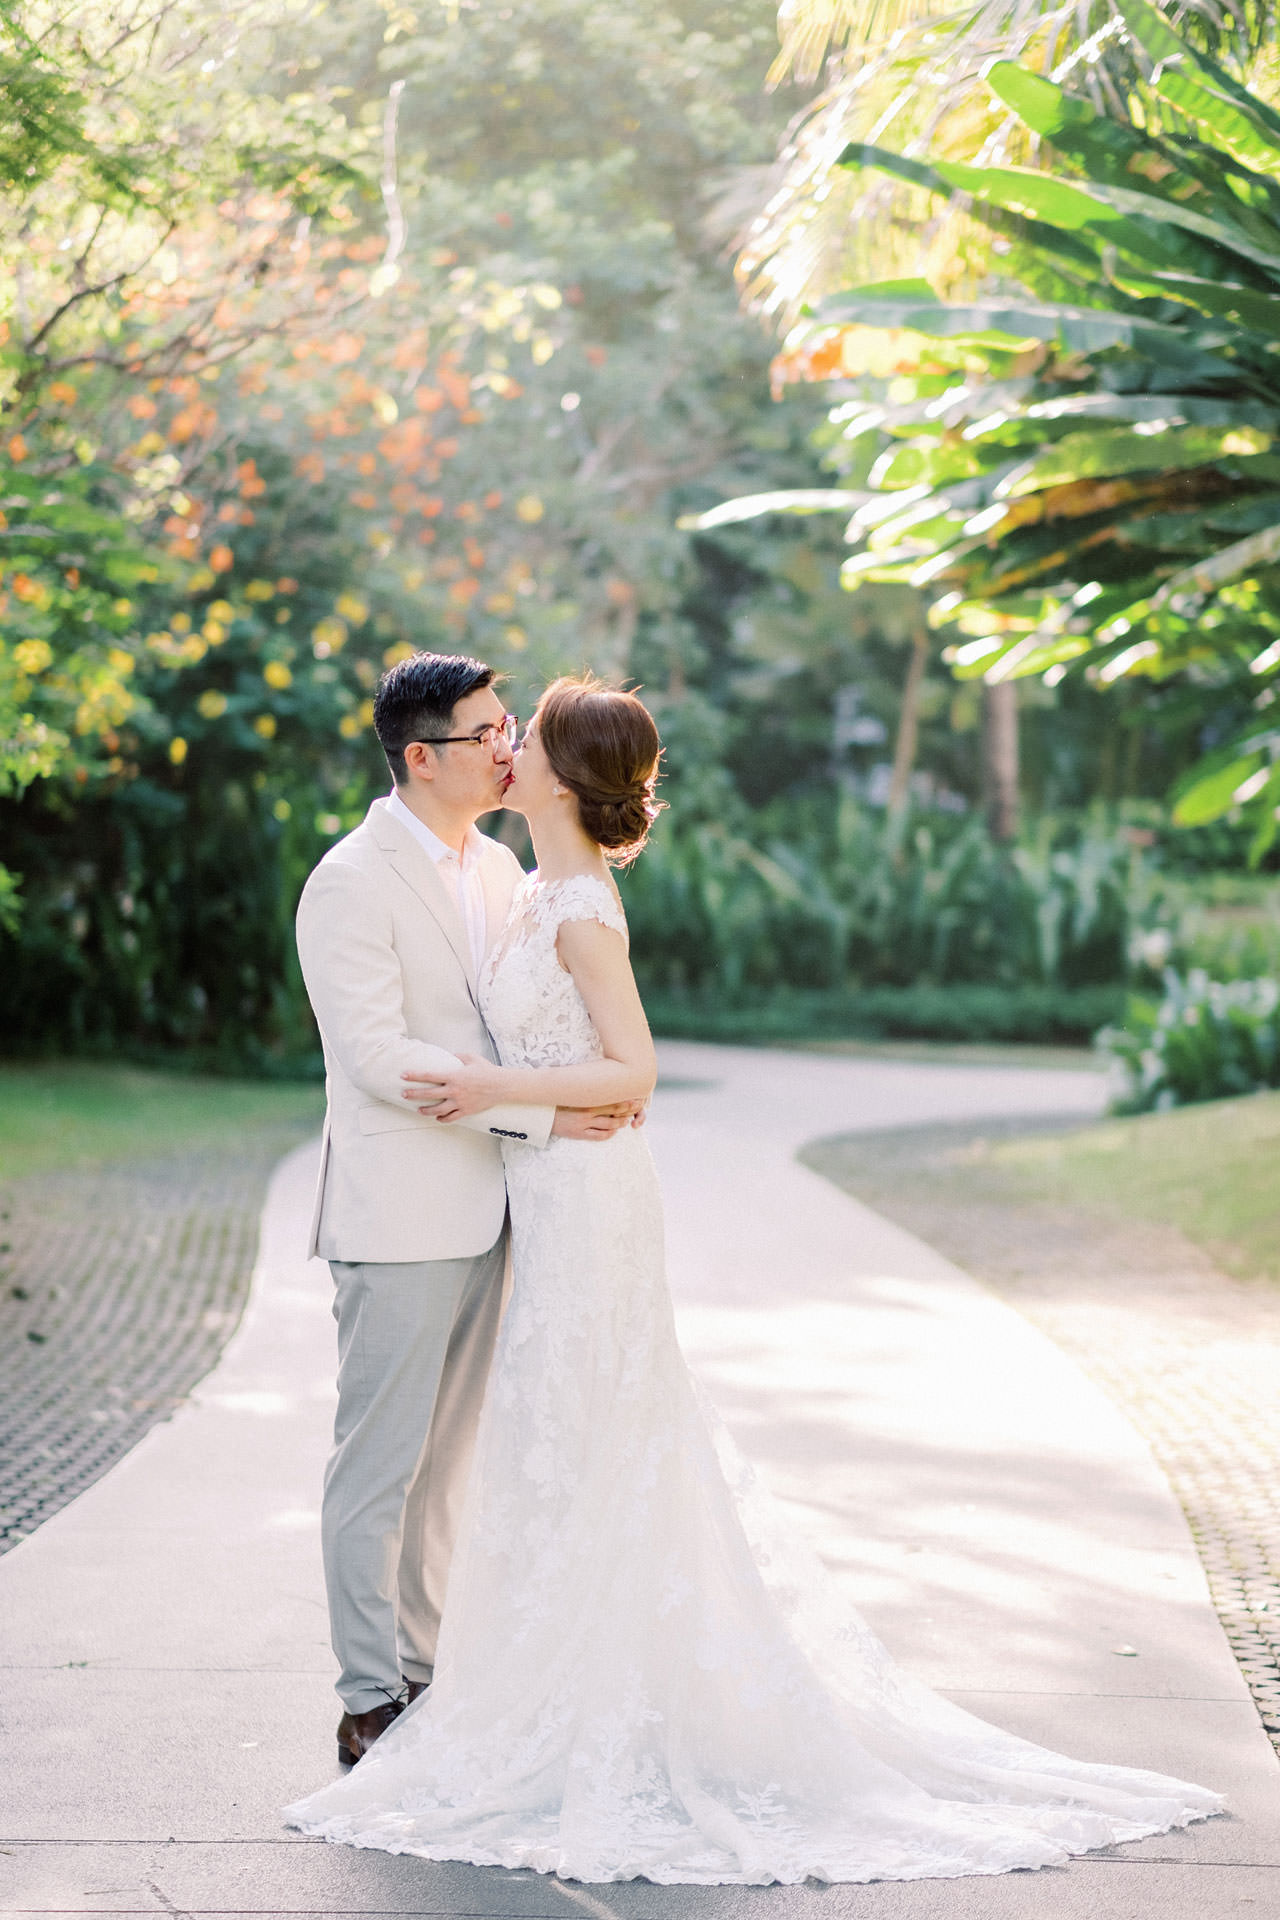 The Ritz Carlton Bali Beach Prewedding 5